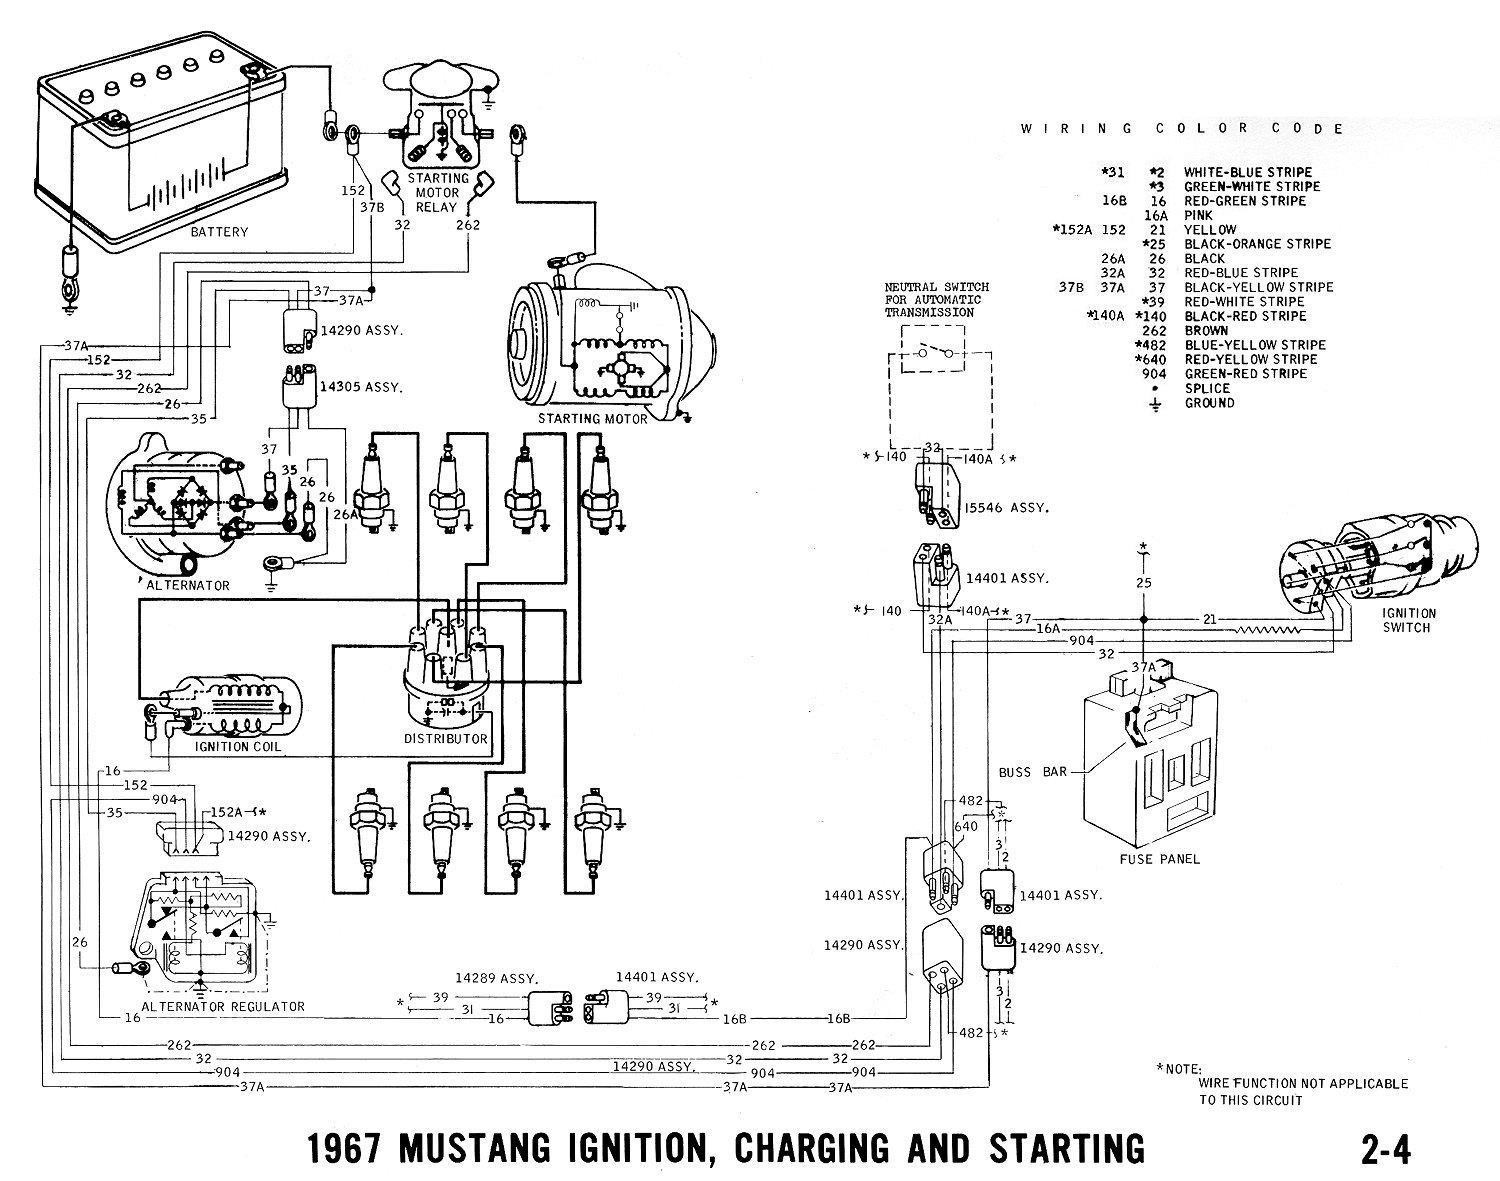 hight resolution of 1968 mercury cougar engine diagram wiring diagram expert 67 cougar engine diagram